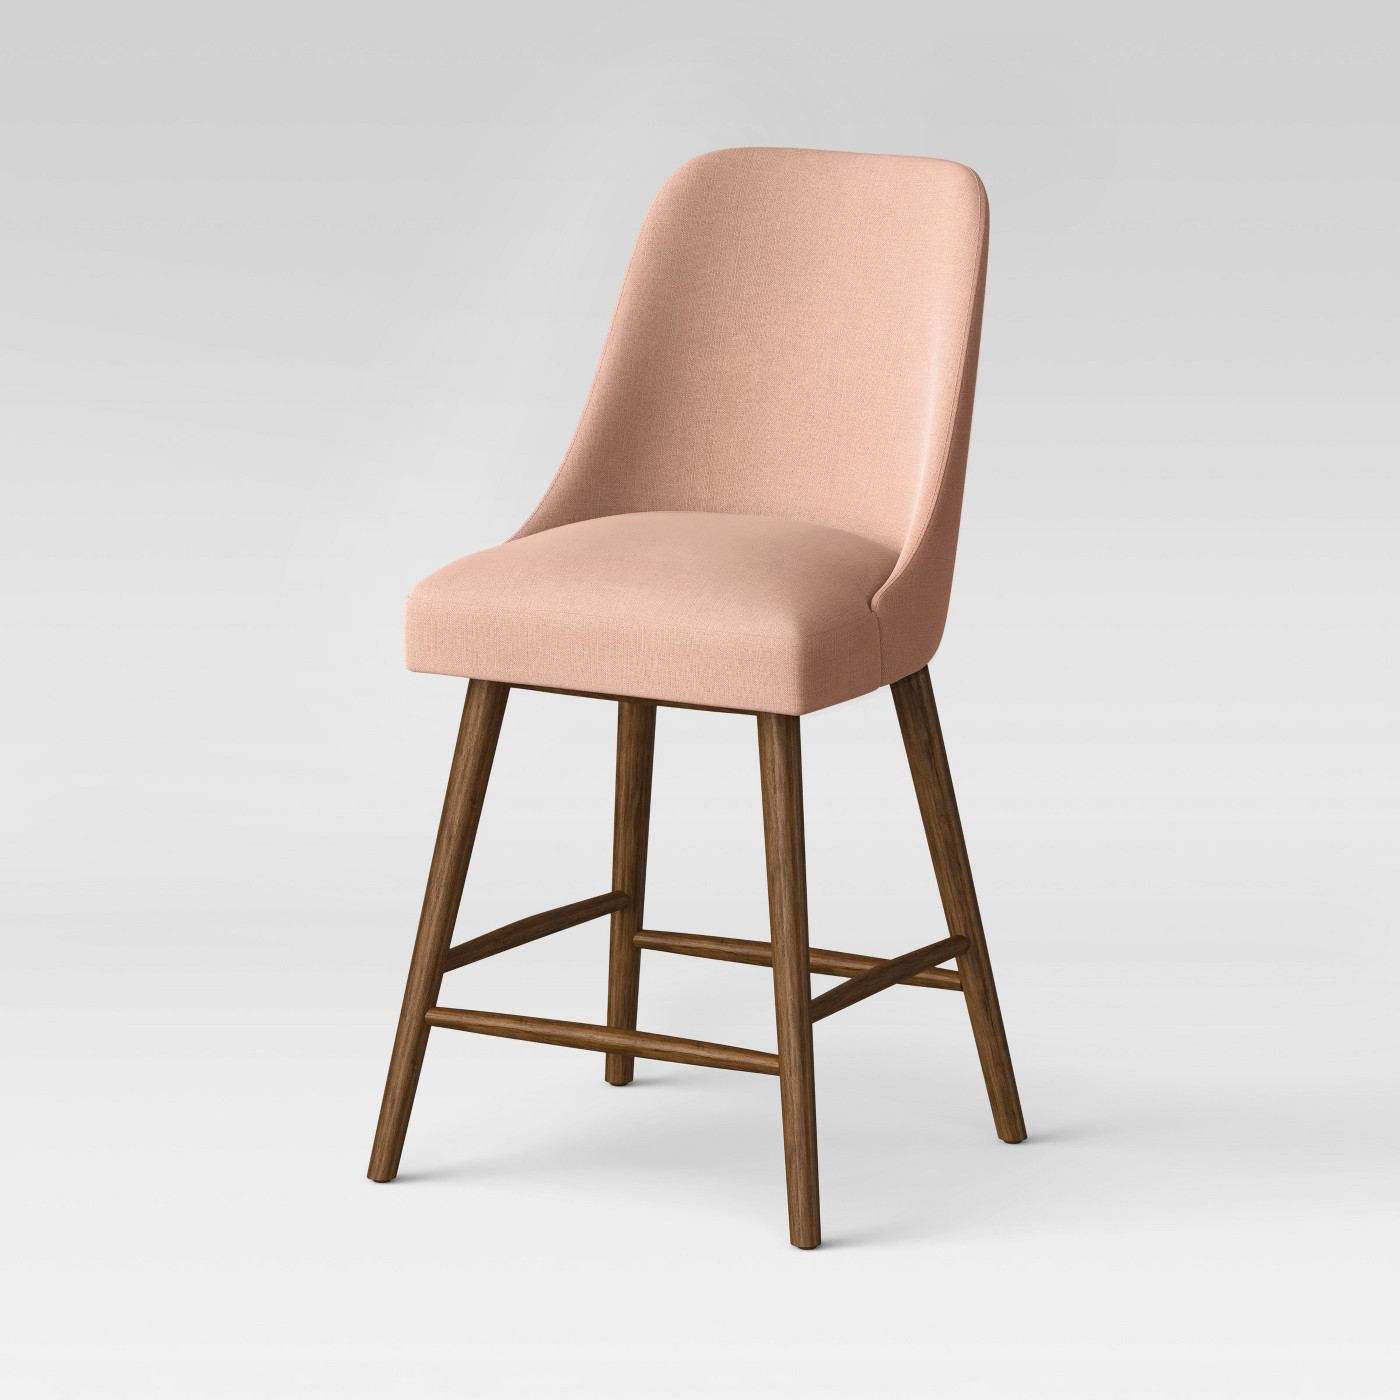 target home decor products launching fall that will pink chair tachuri accent table transform your space coffee kijiji crystal bedside lamps inch wide nightstand narrow side ikea